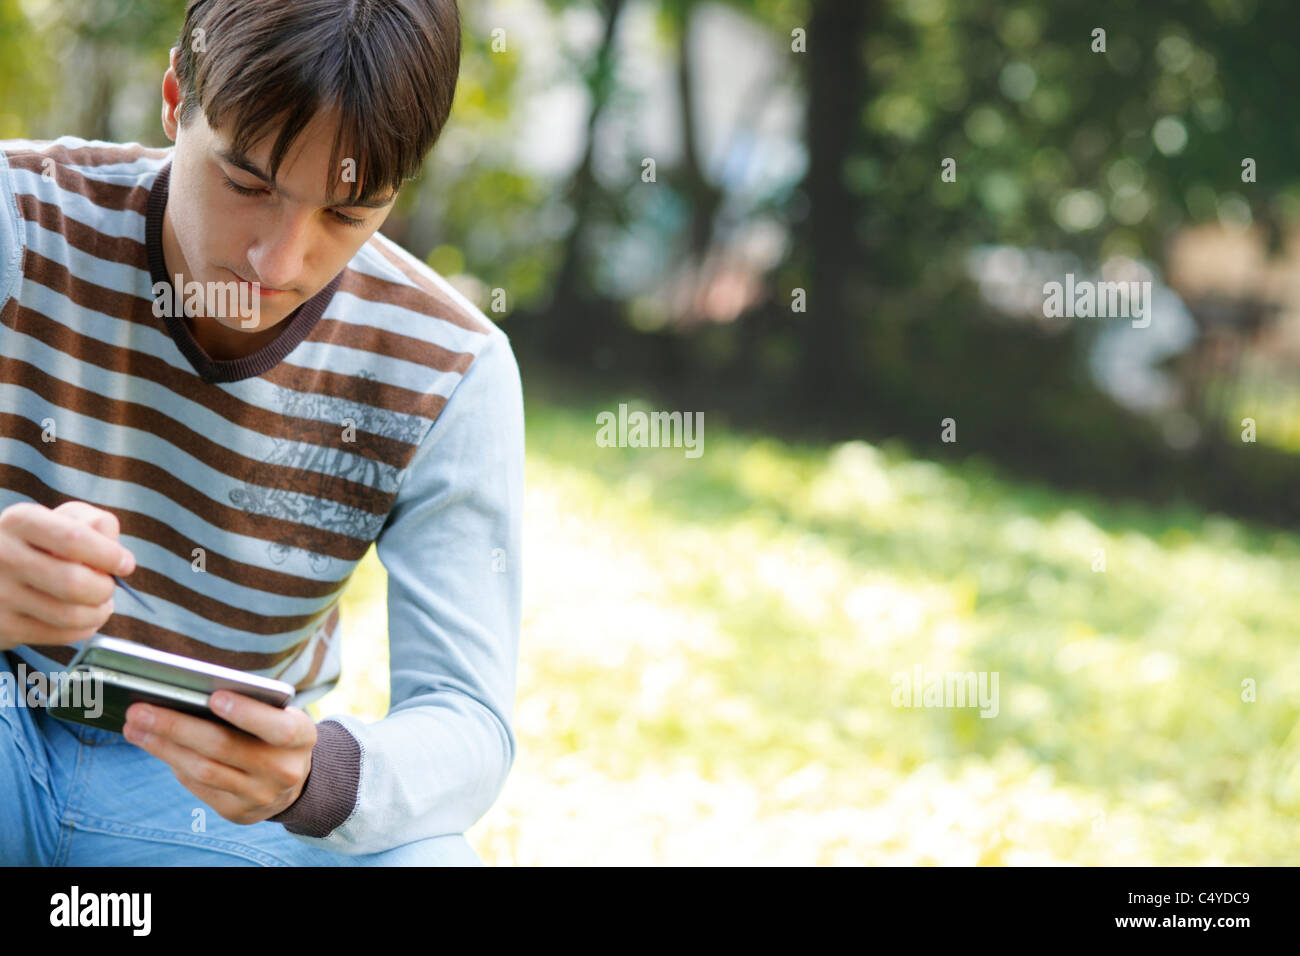 Young man using a PDA outdoors - Stock Image